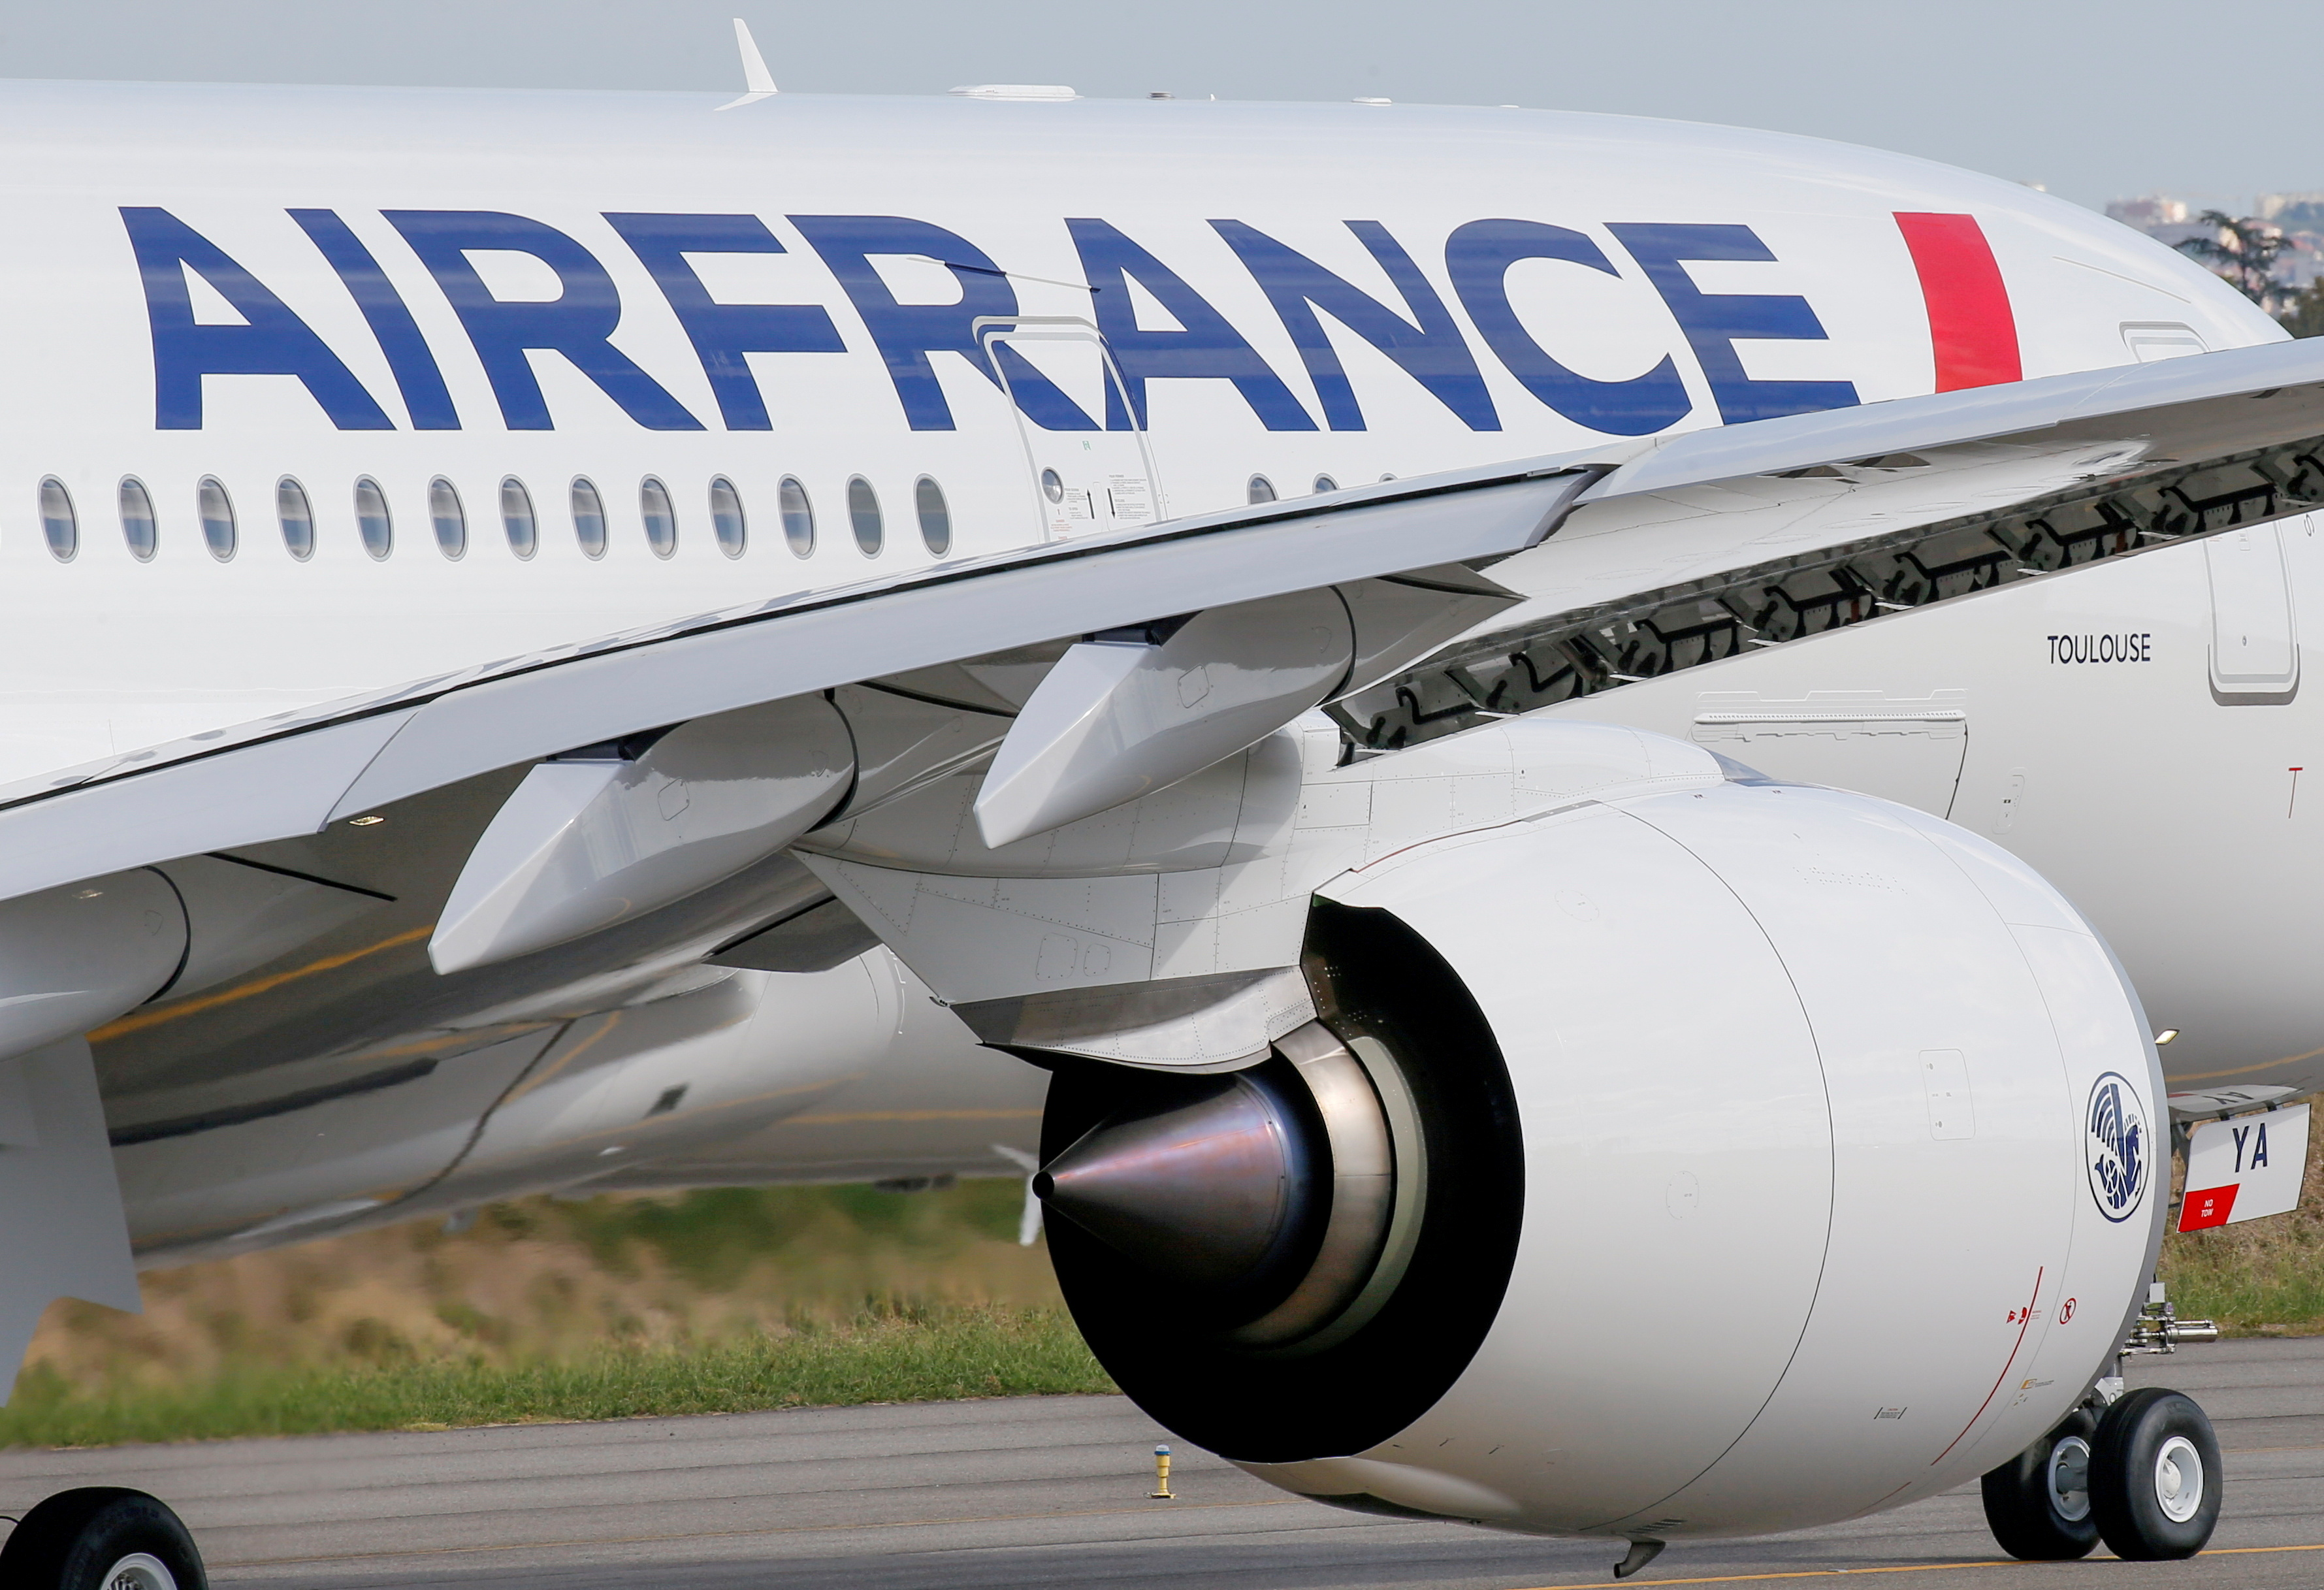 The first Air France Airbus A350 prepares to take off after a ceremony at the aircraft builder's headquarters in Colomiers near Toulouse, France, September 27, 2019. REUTERS/Regis Duvignau